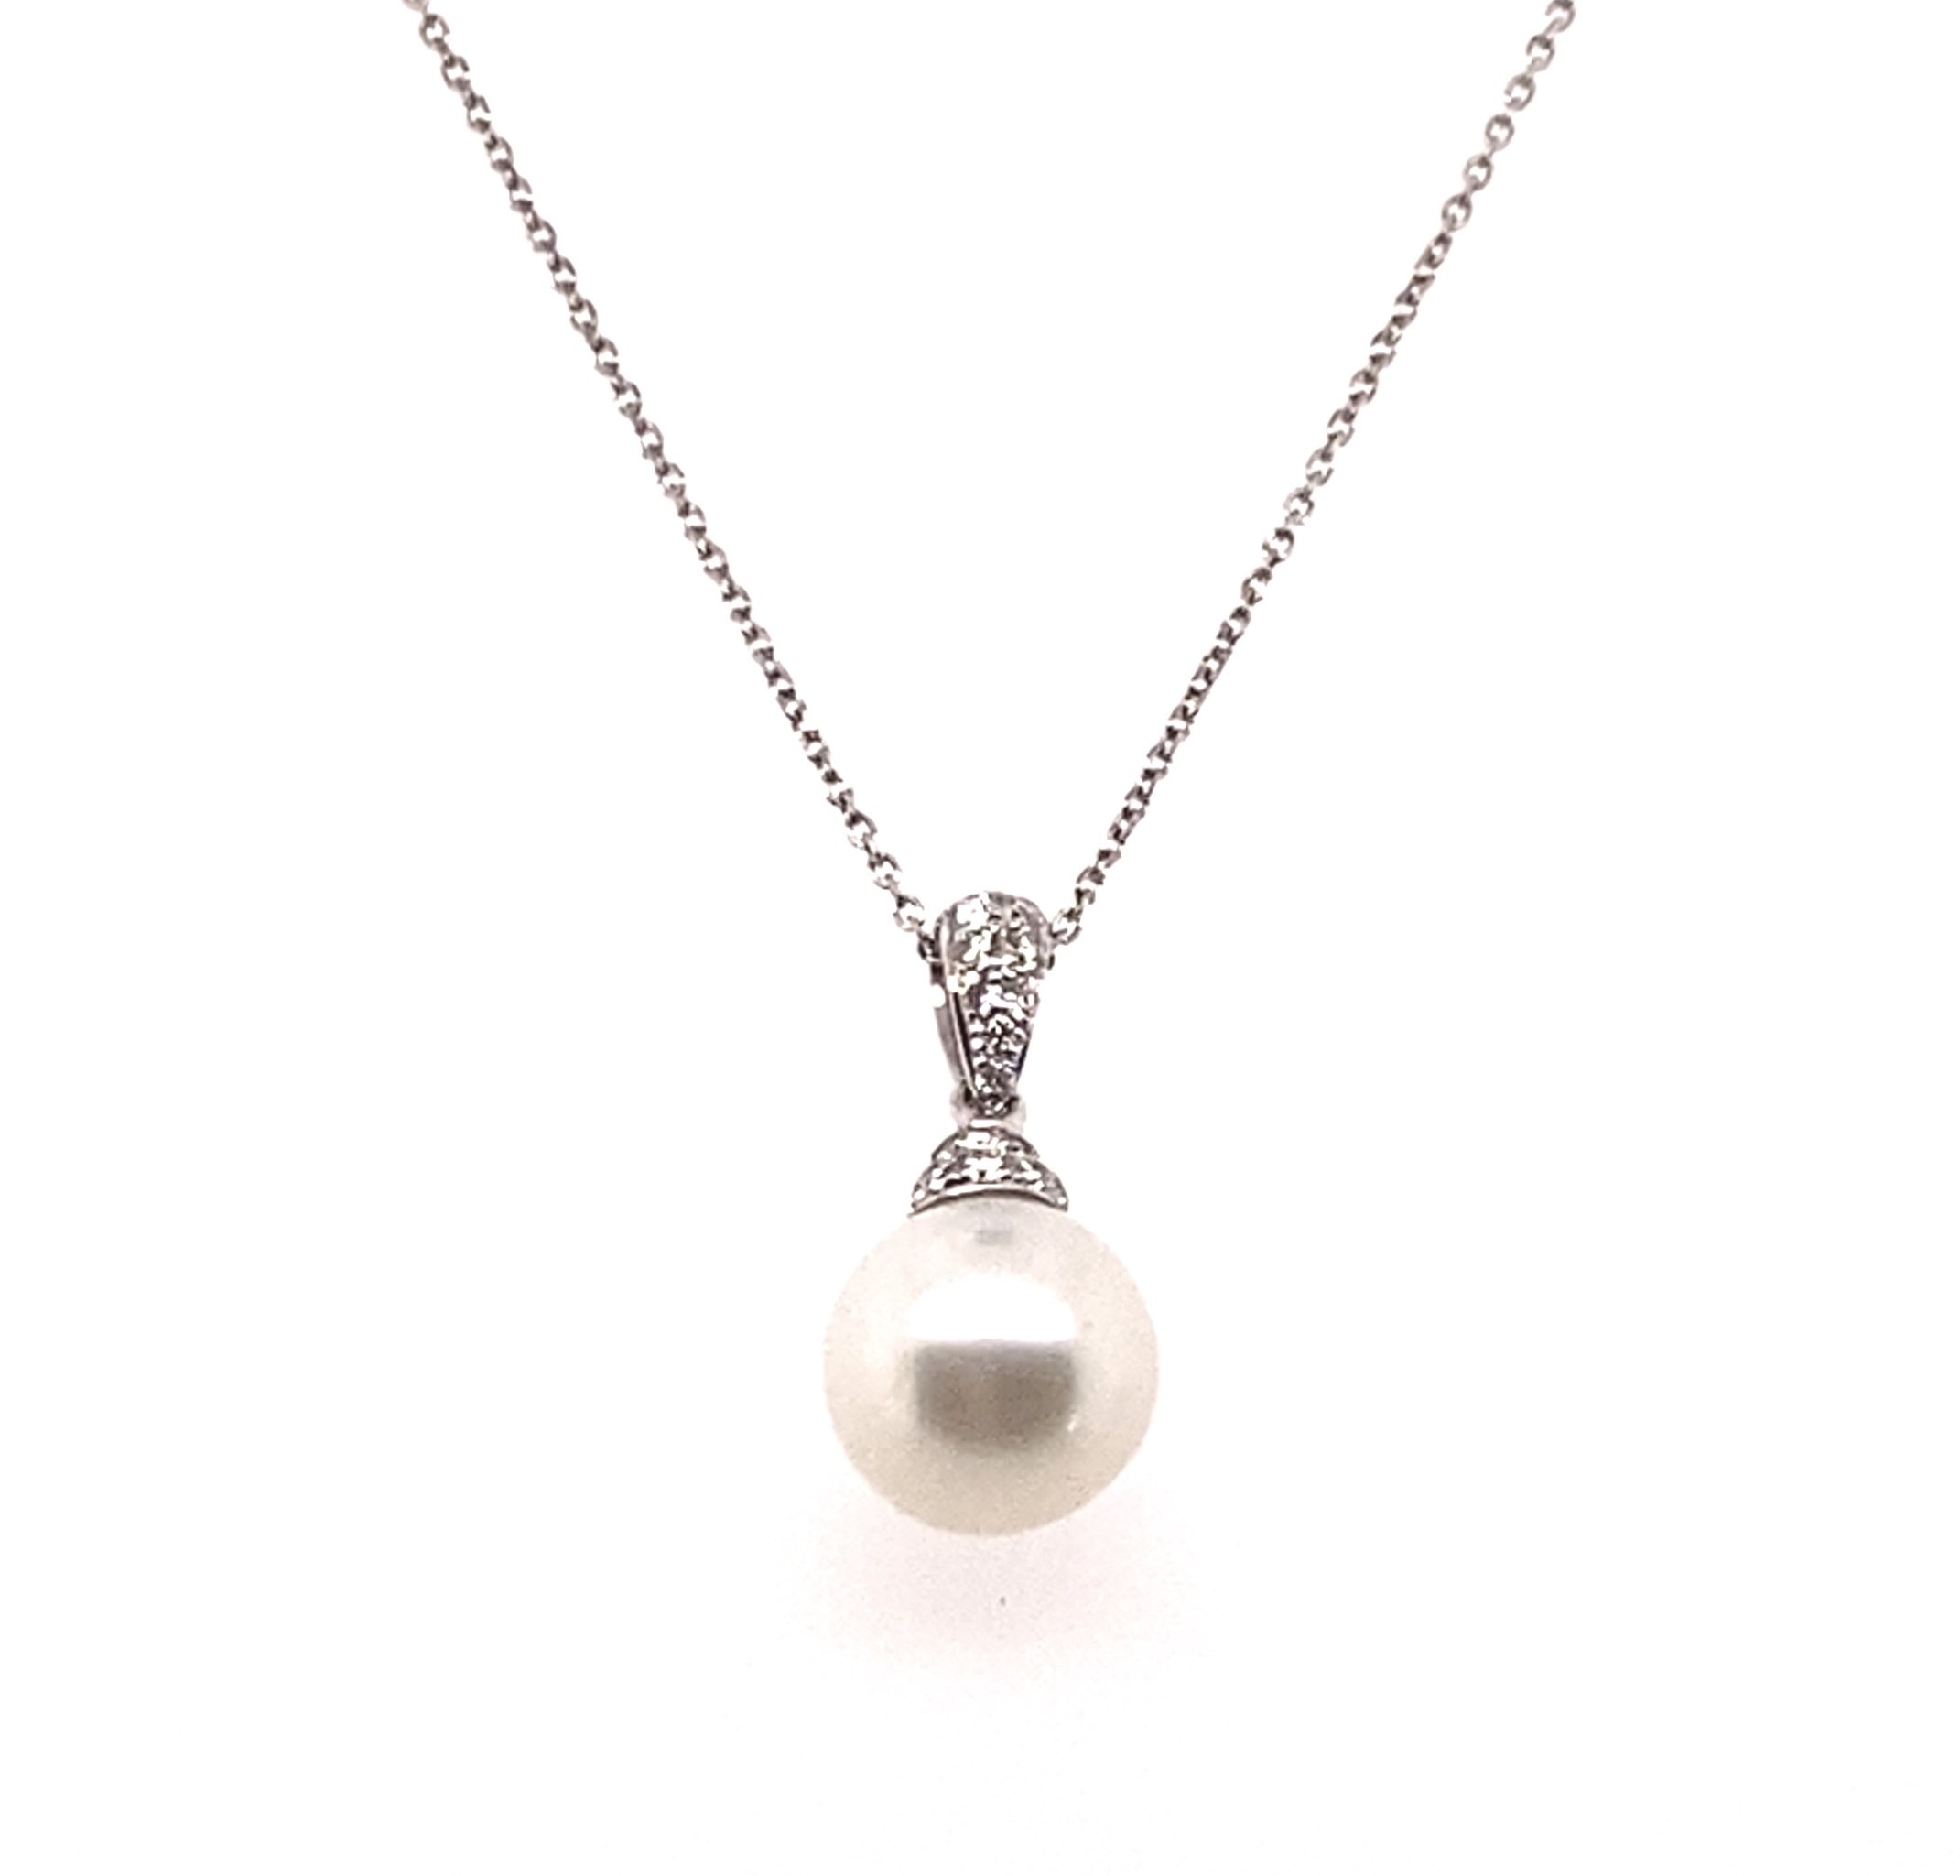 18 Carat White Gold 7.5mm Cultured Pearl Pave Diamond SetPendant